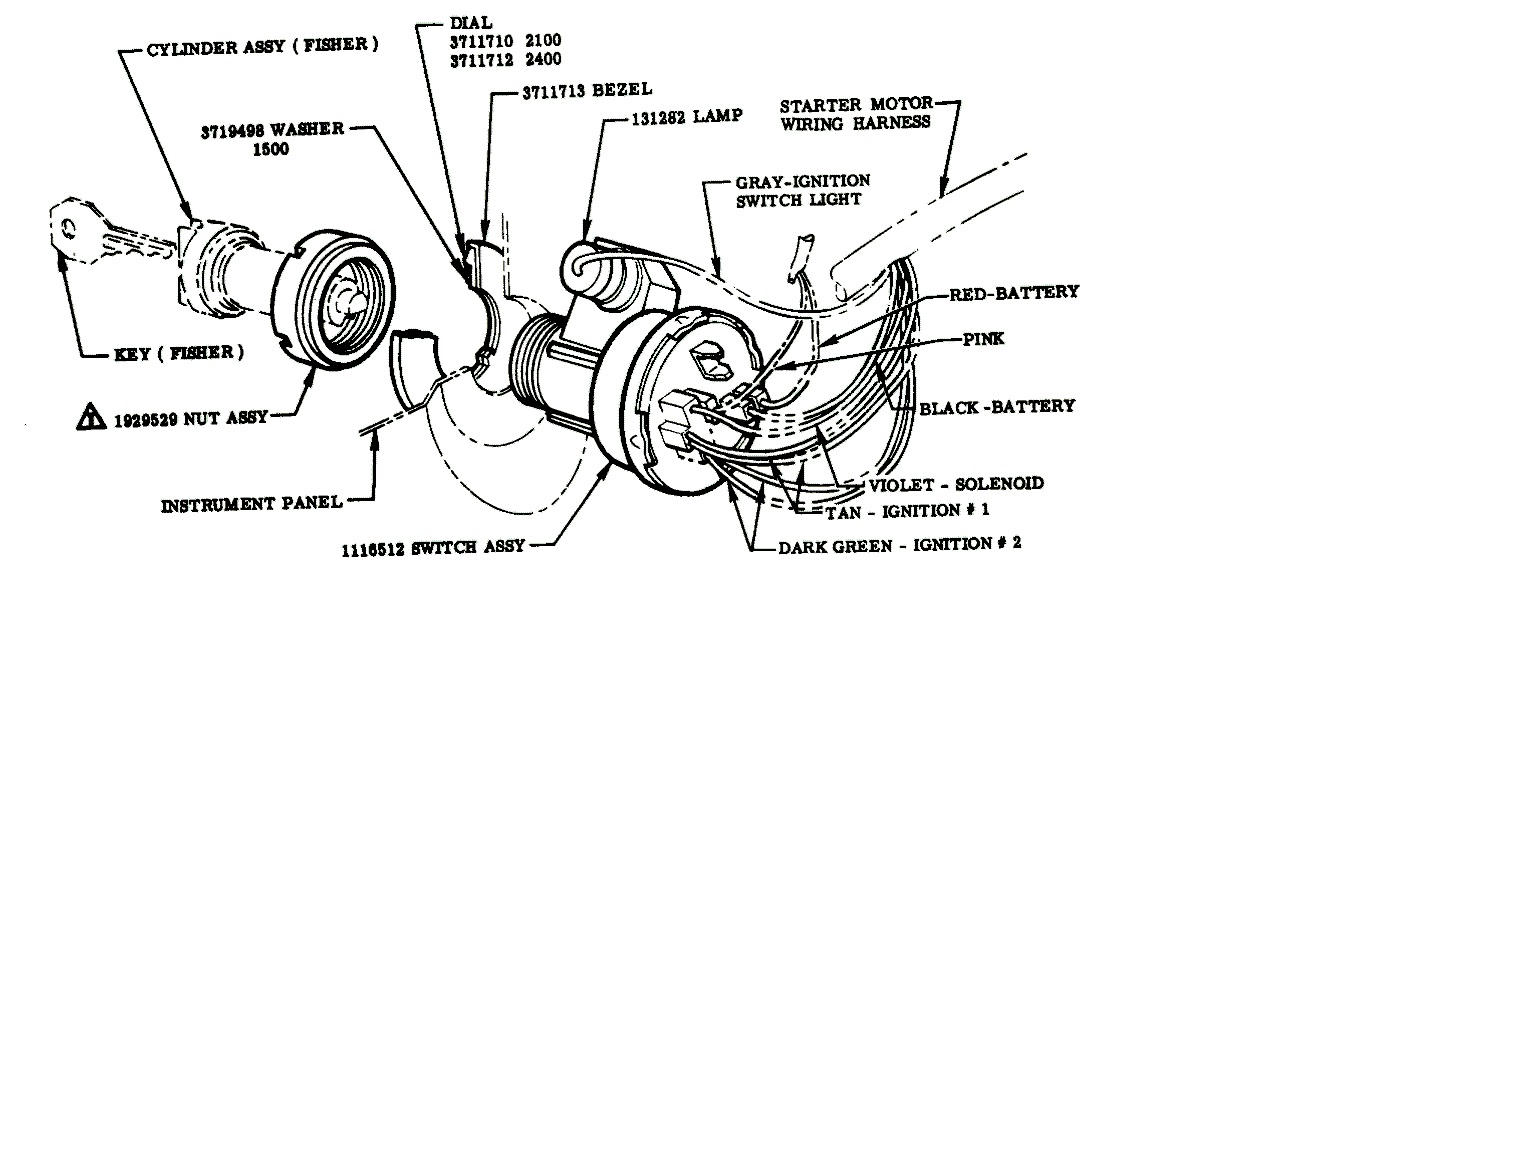 ford hei distributor wiring diagram ford ignition coil diagram 1955 ford f100 wiring diagram at crackthecode.co